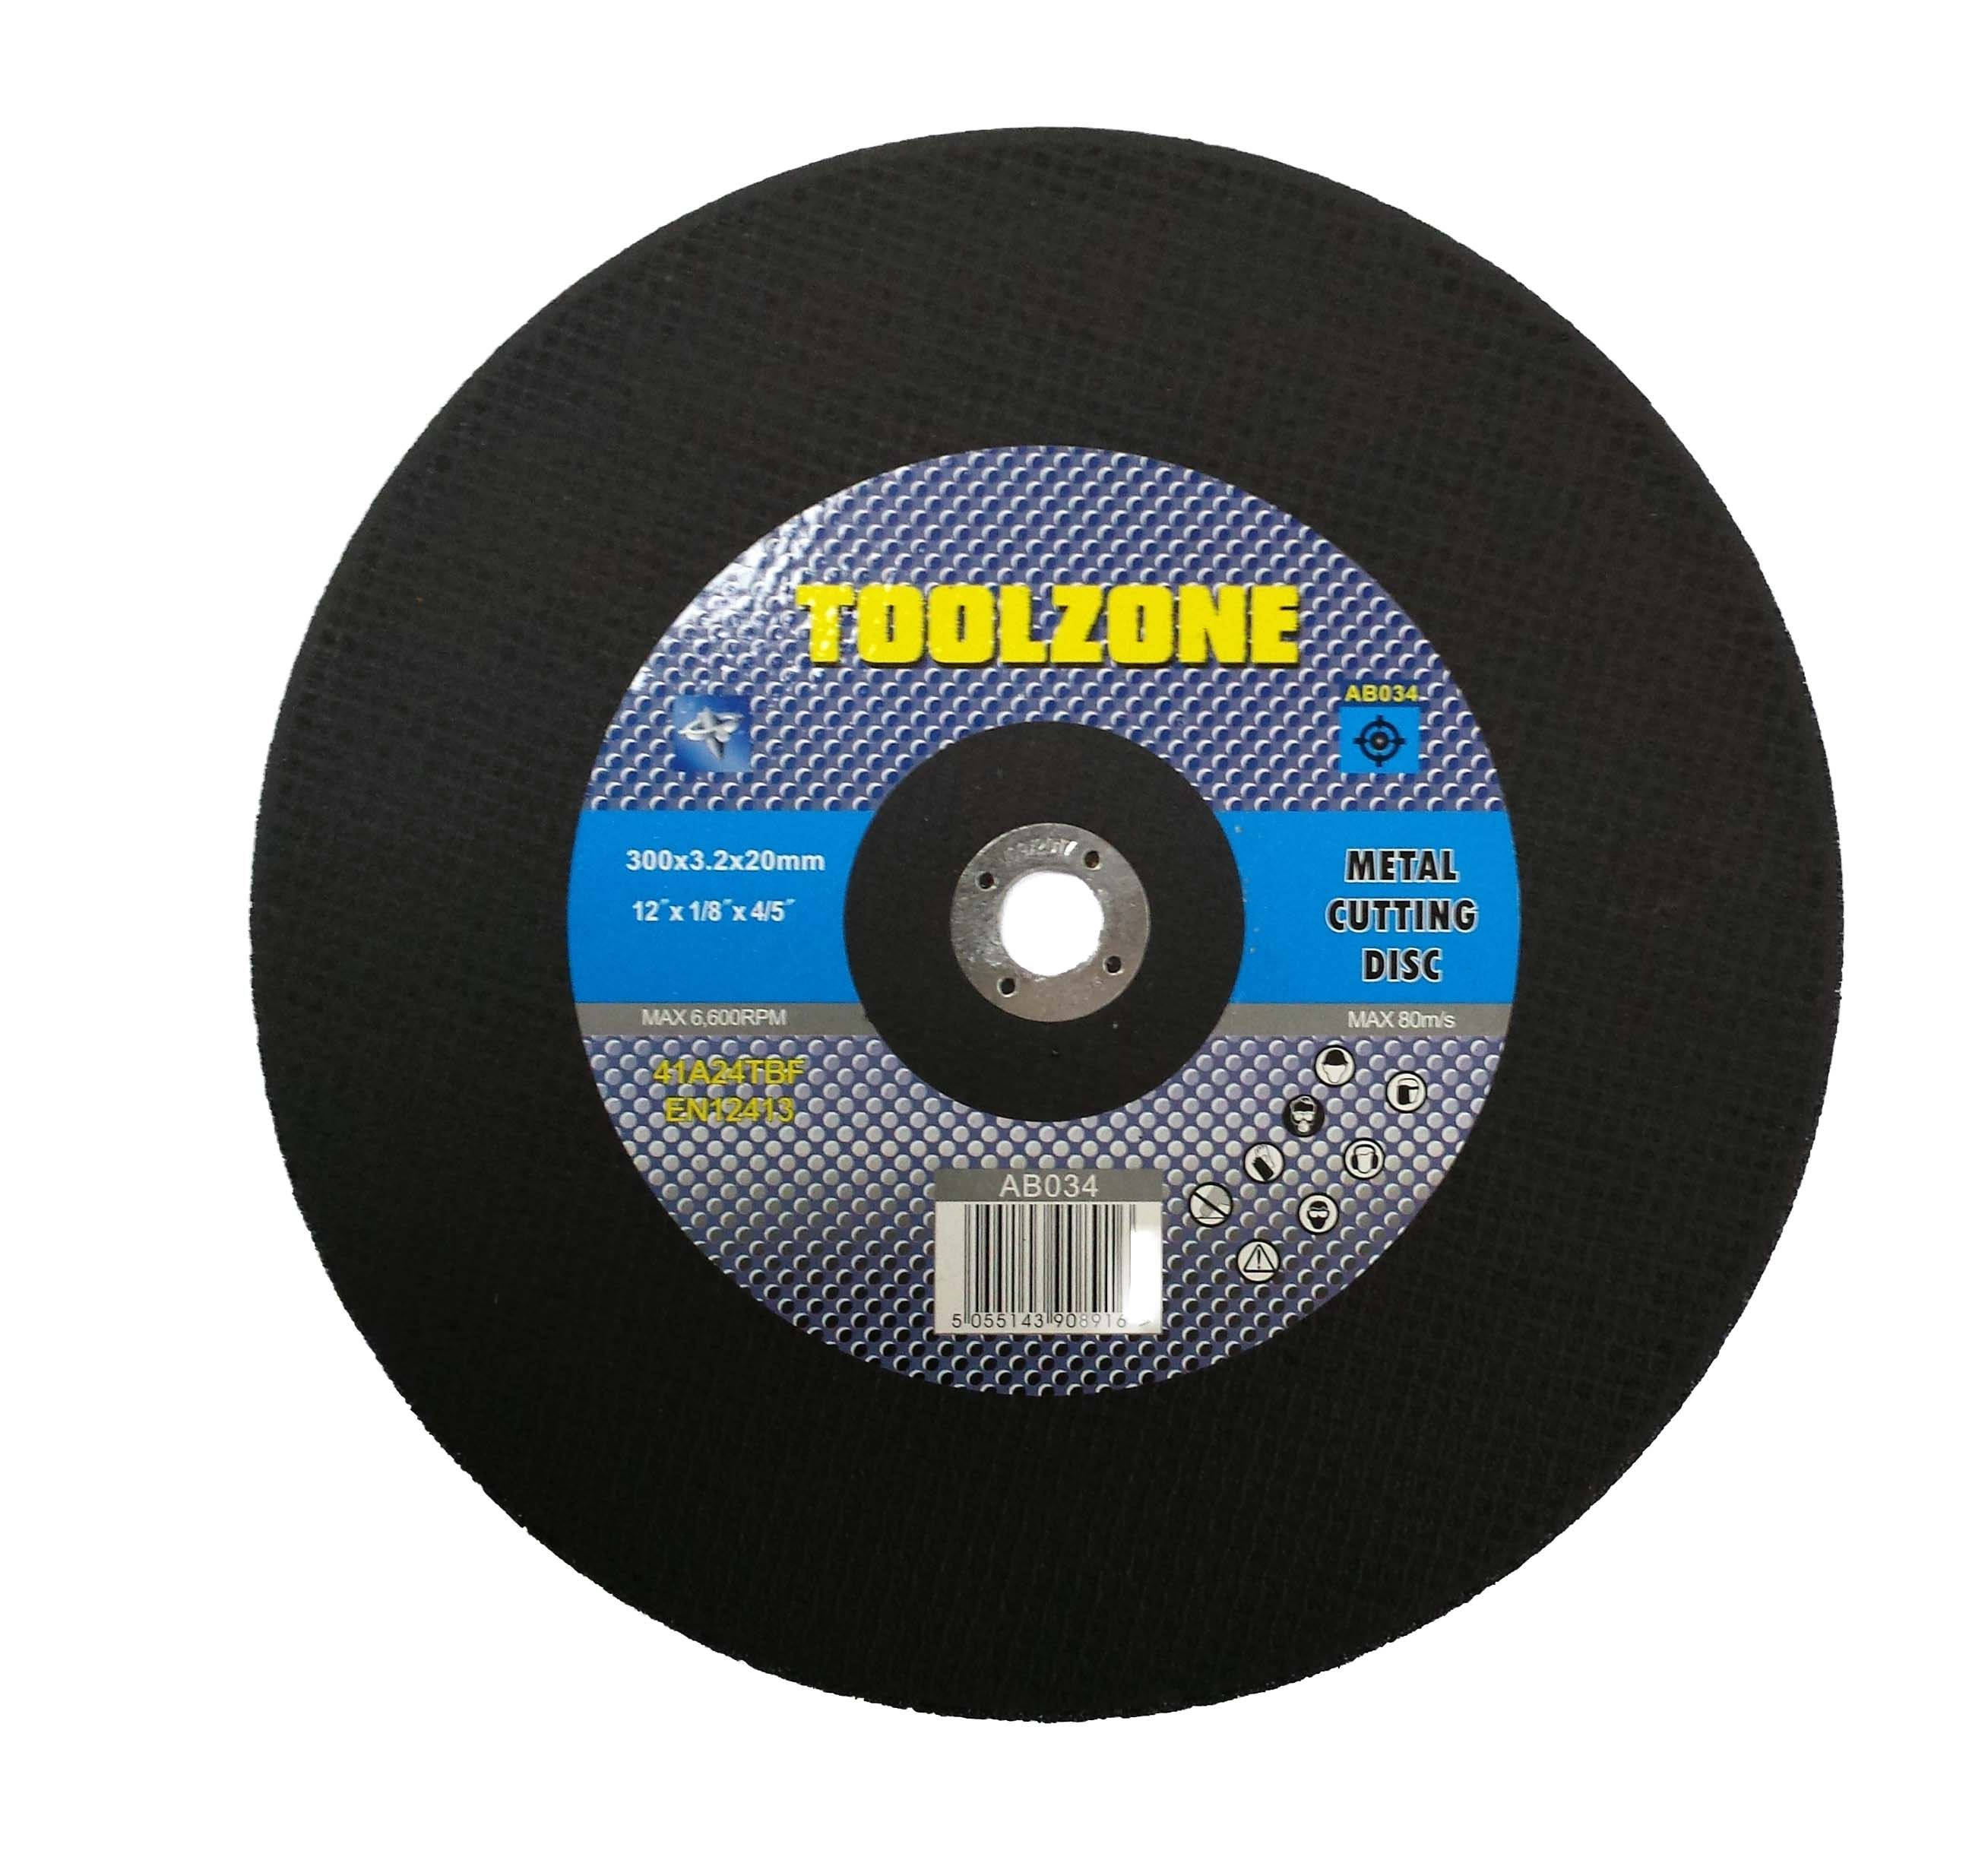 "Toolzone 12"" Metal Cutting Disc Flat"